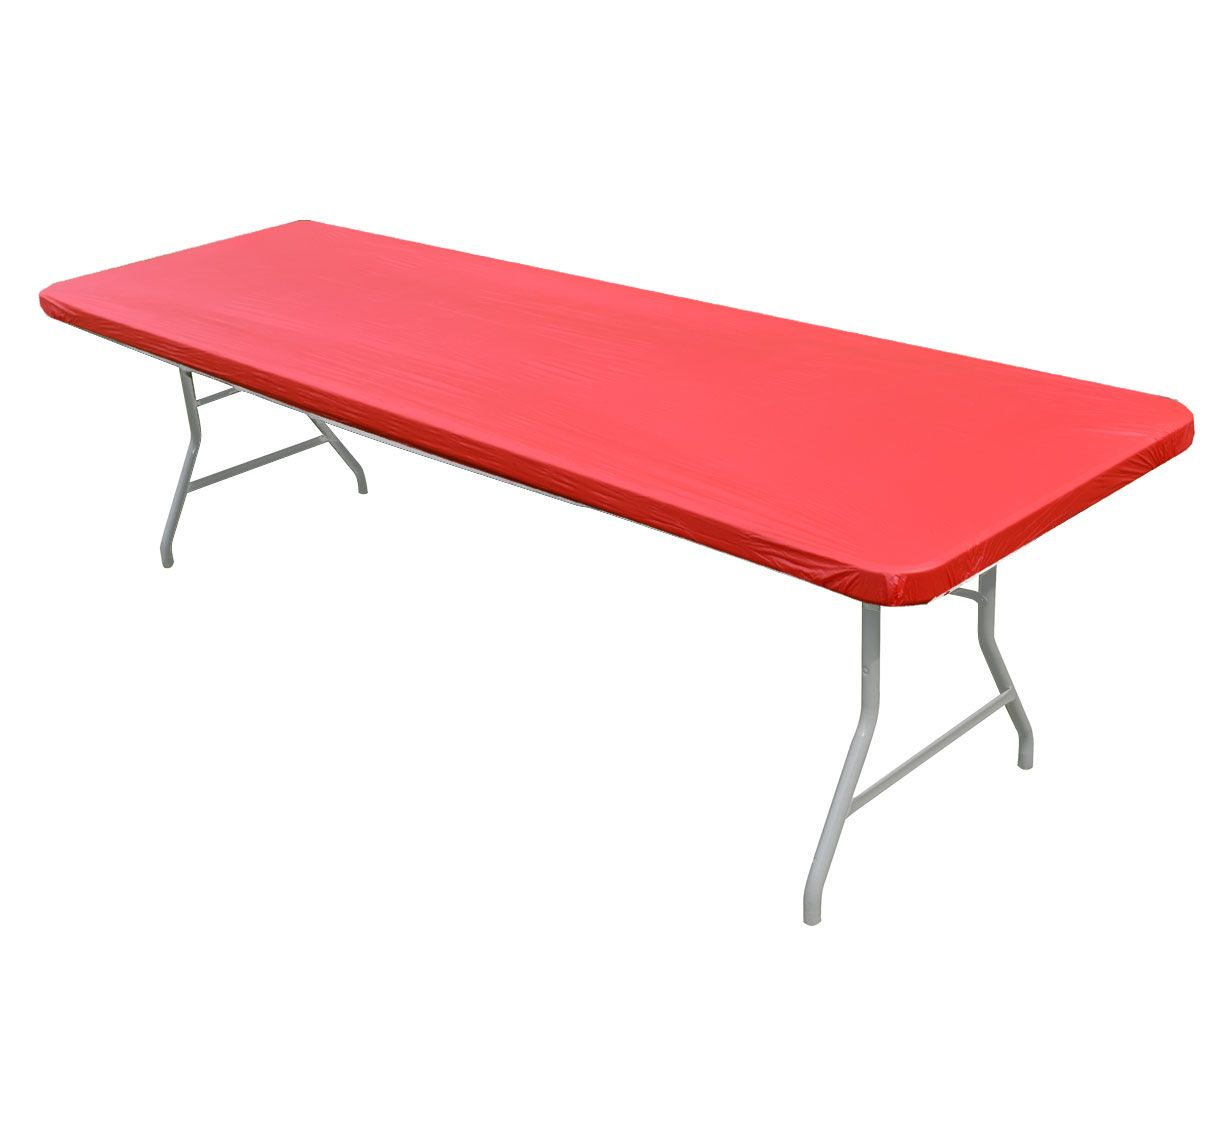 216 & Kwik Covers 8\u0027 Rectangle Red Table Cover by Kwik Cover